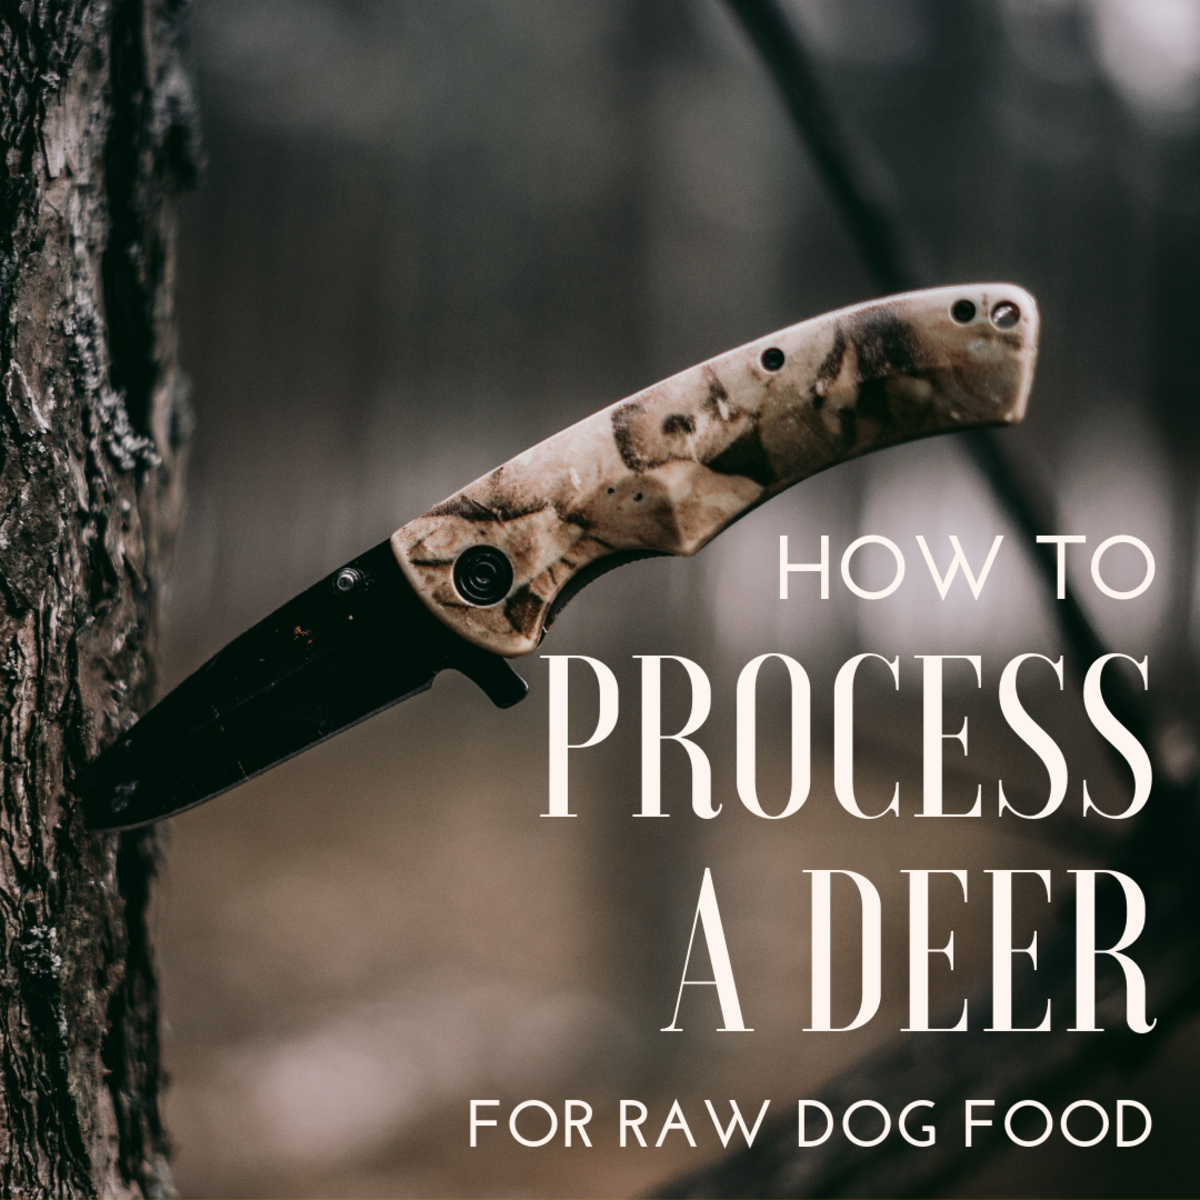 How to Cut Up a Deer for Dog Food: An Illustrated Guide